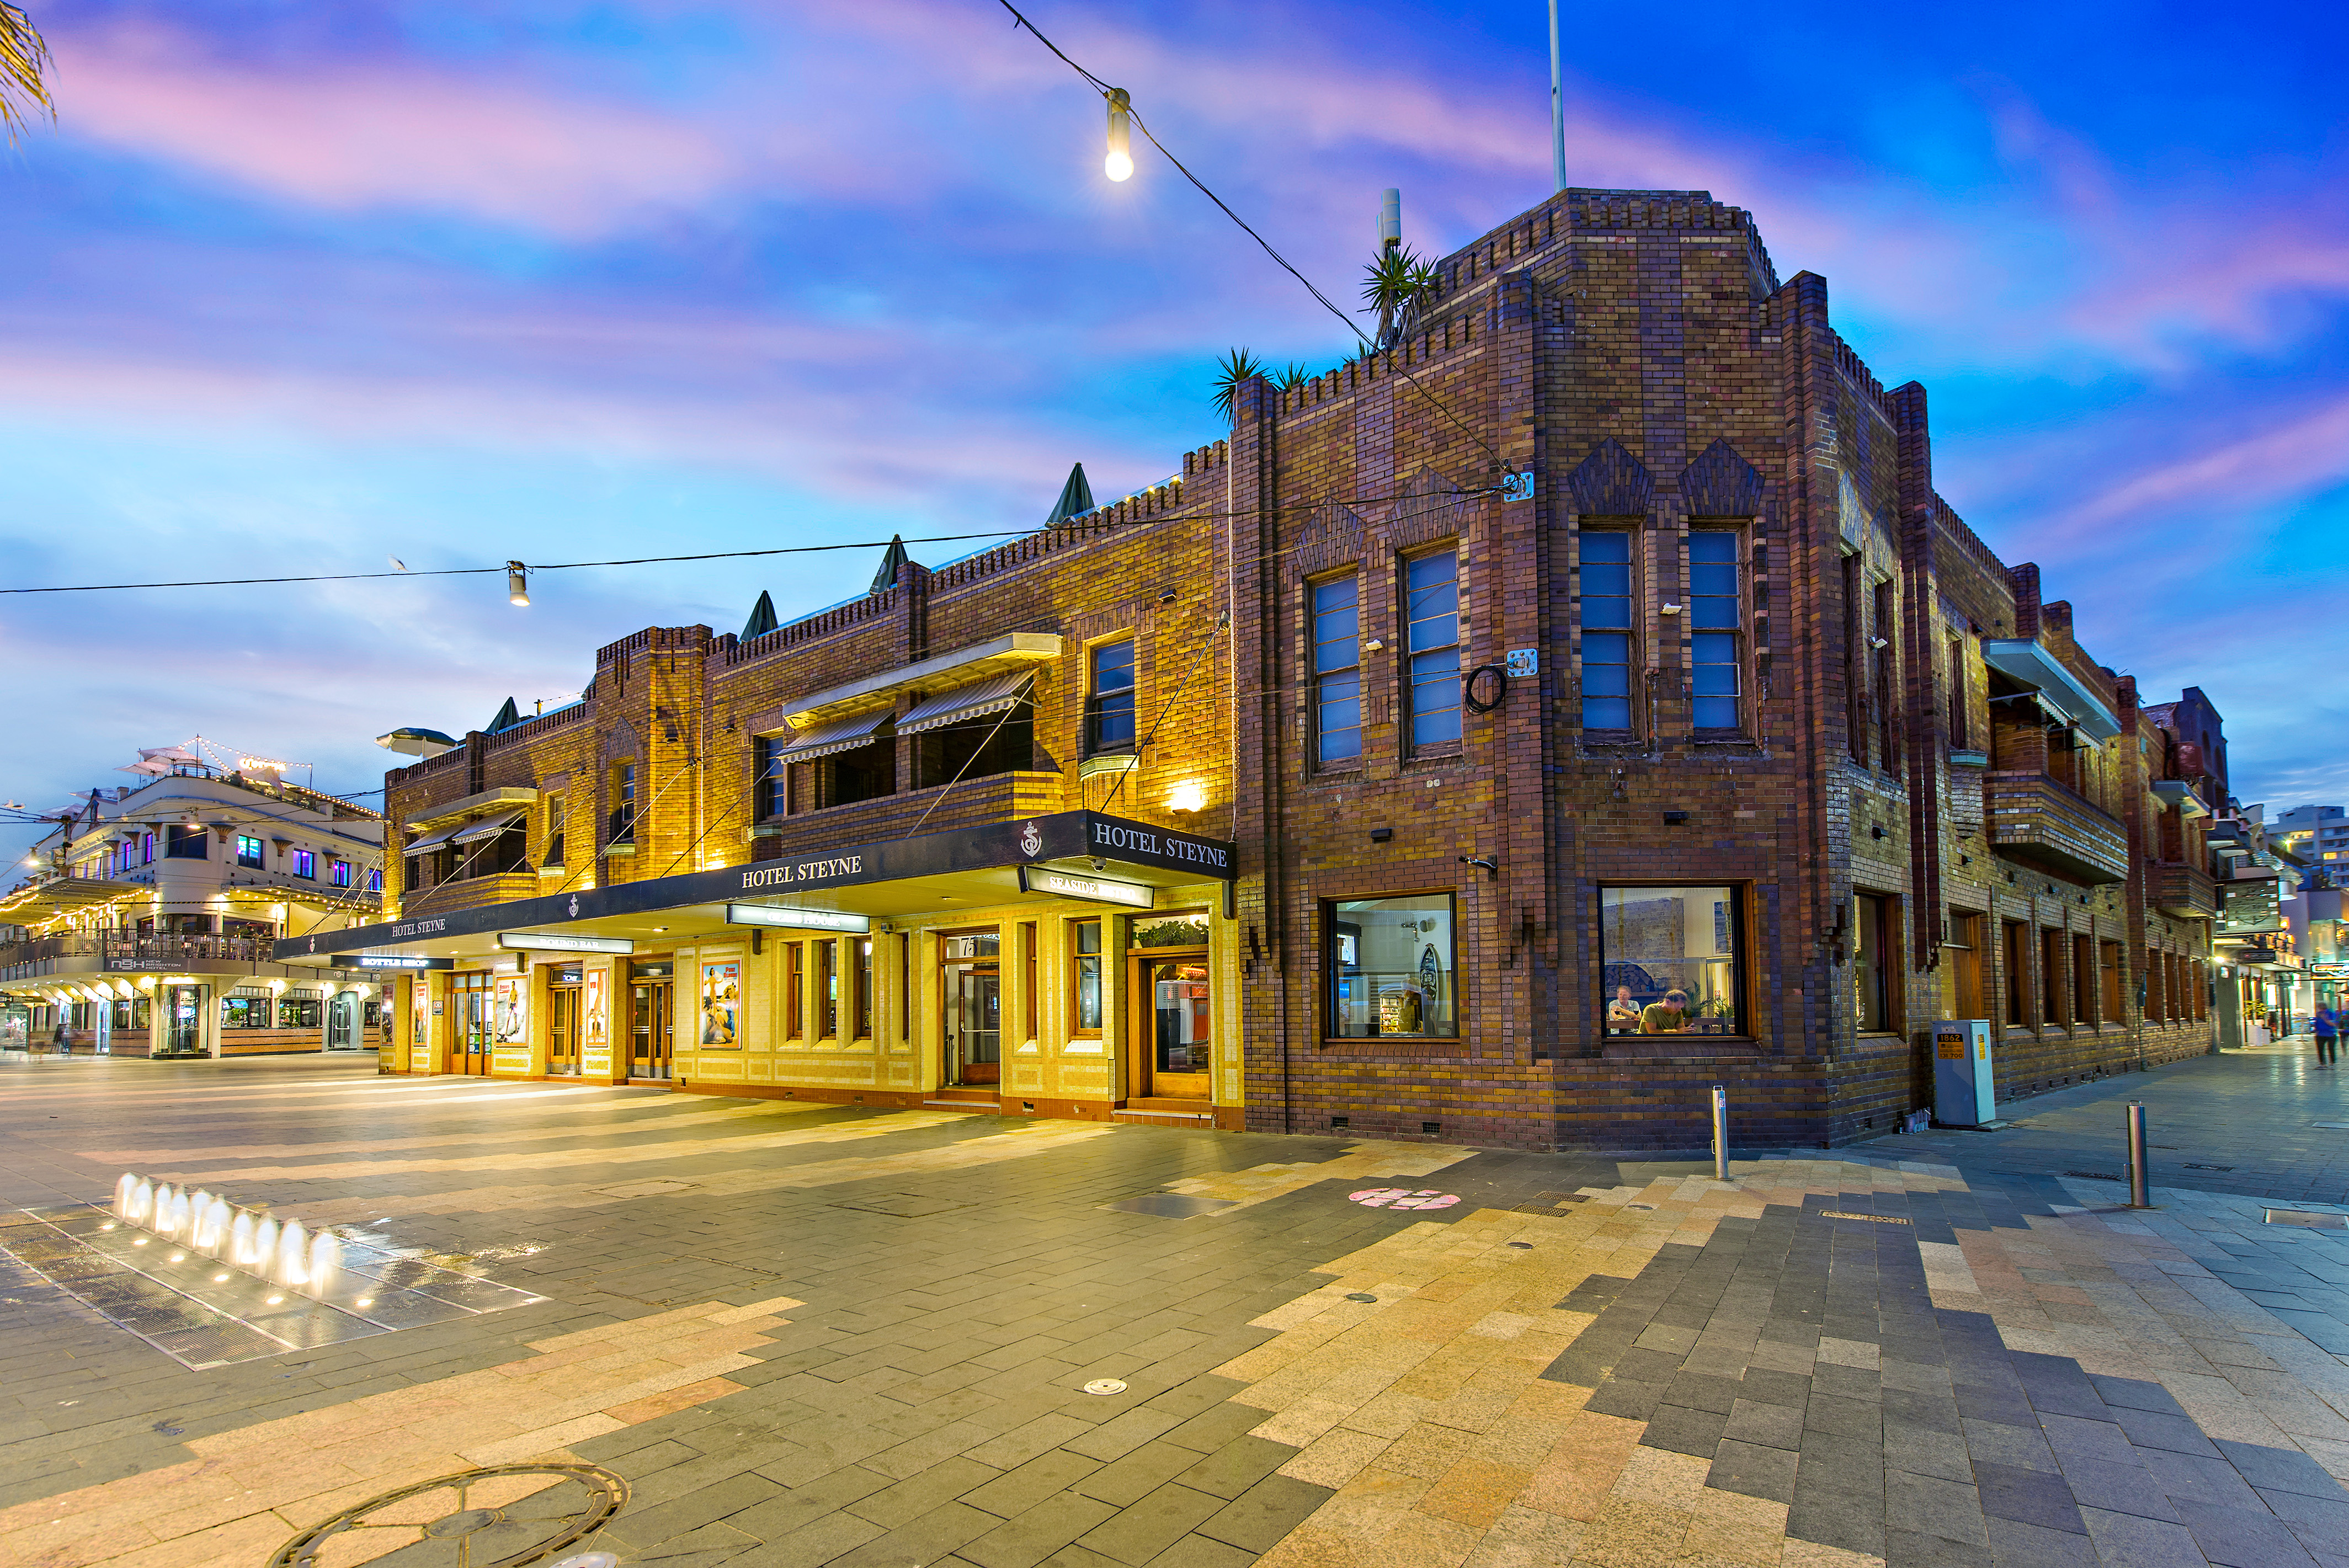 Manly's Hotel Steyne has been listed with a significant price tag.